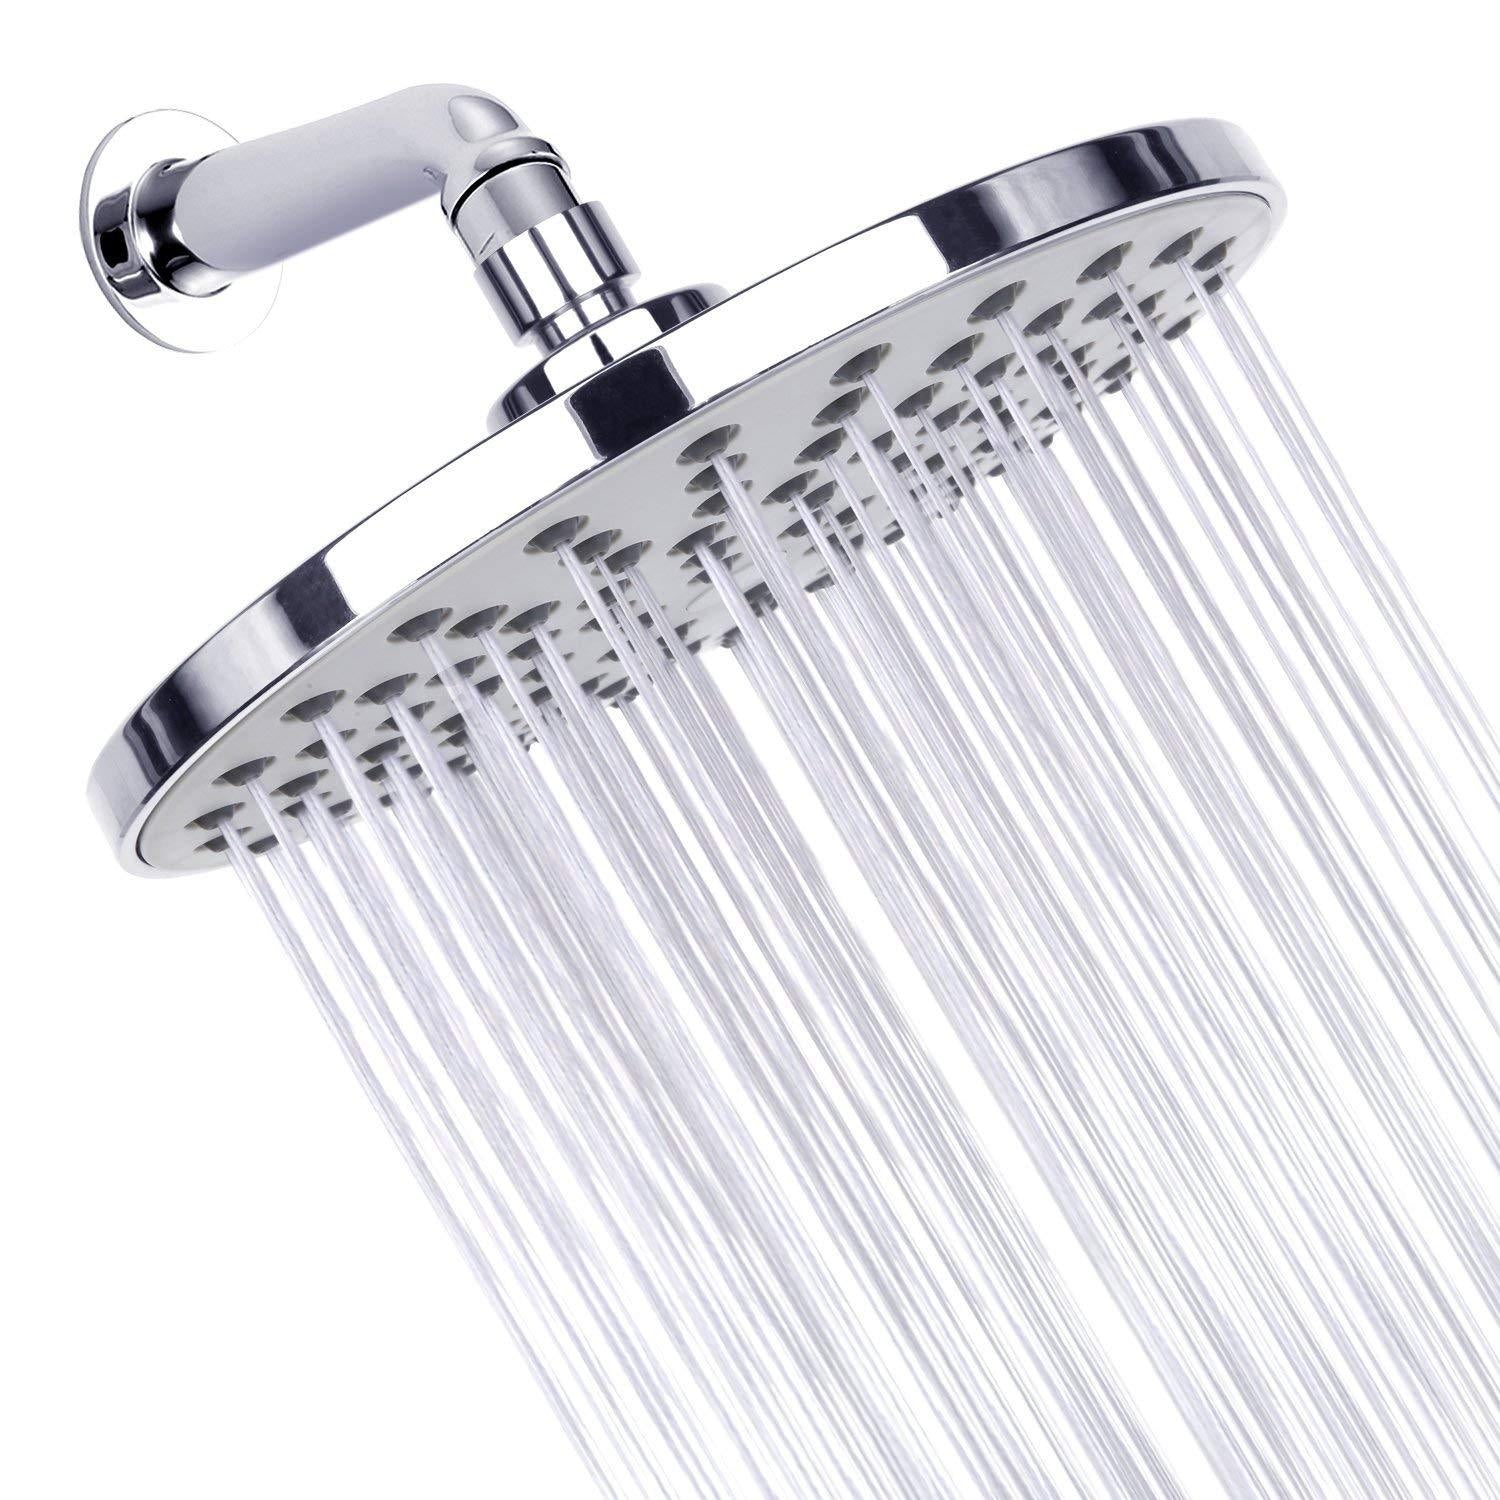 "Shower Head, Rainfall High Pressure 8""Chrome Showerhead with Removable Water Restrictor for The Best Relaxation and Spa"